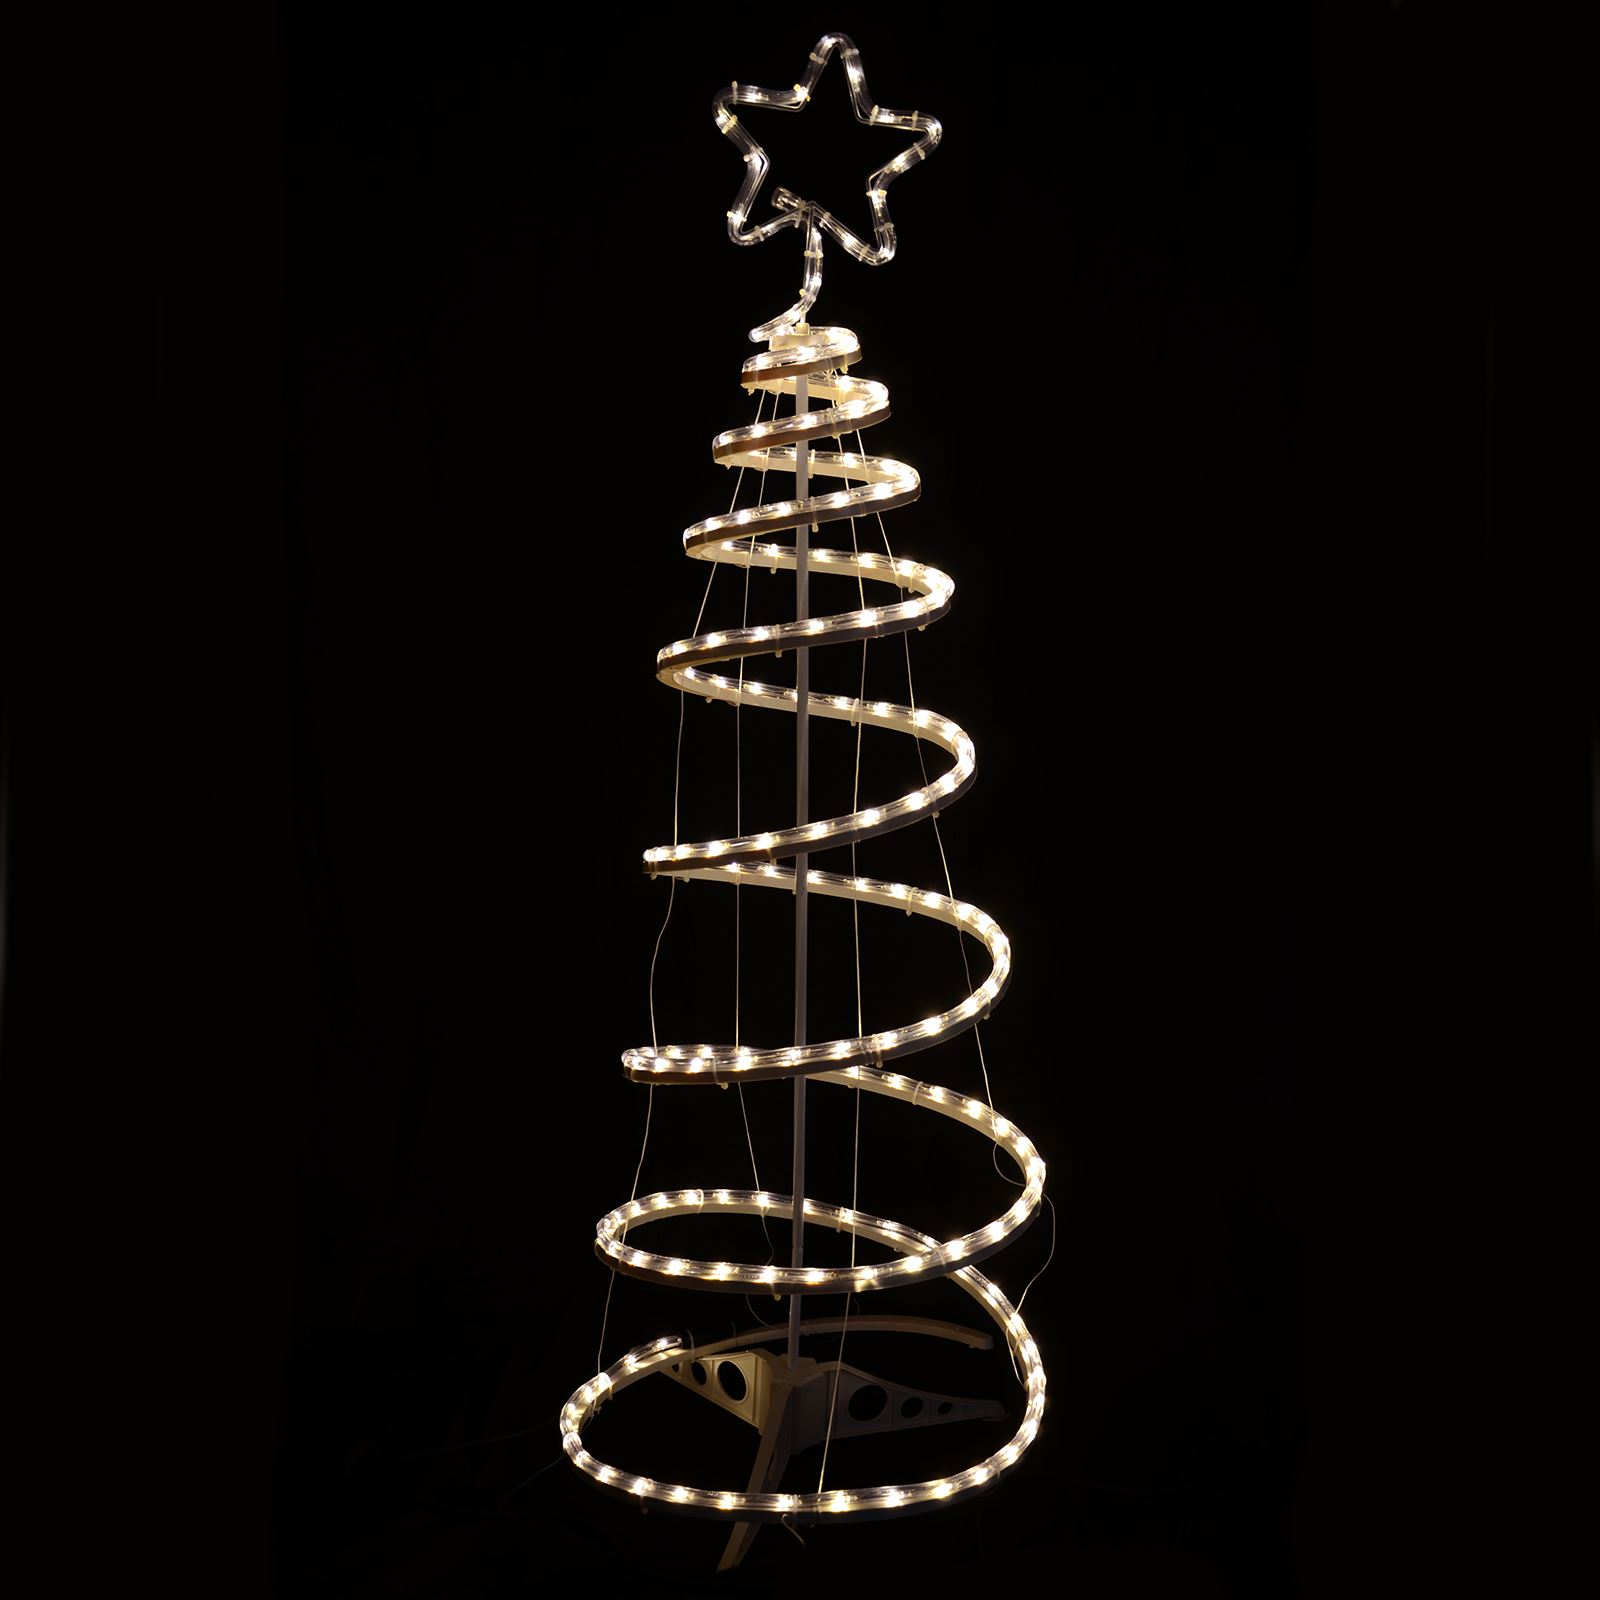 new styles 04d32 c3909 Details about Multi-Action Warm White Spiral Tree Christmas Xmas Rope Light  Indoor / Outdoor